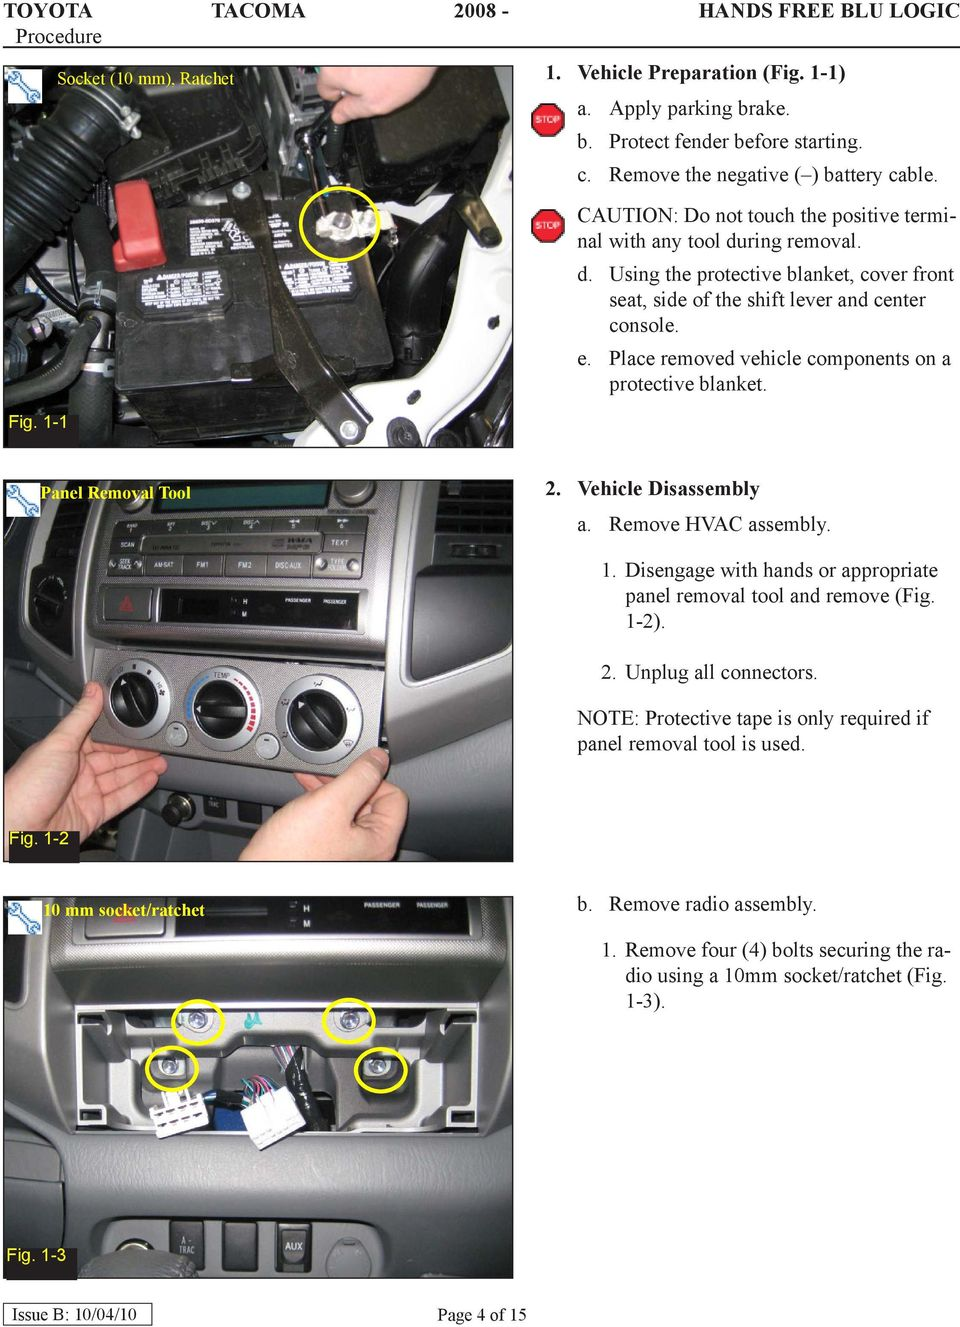 Place removed vehicle components on a protective blanket. Panel Removal Tool 2. Vehicle Disassembly a. Remove HVAC assembly. 1. Disengage with hands or appropriate panel removal tool and remove (Fig.